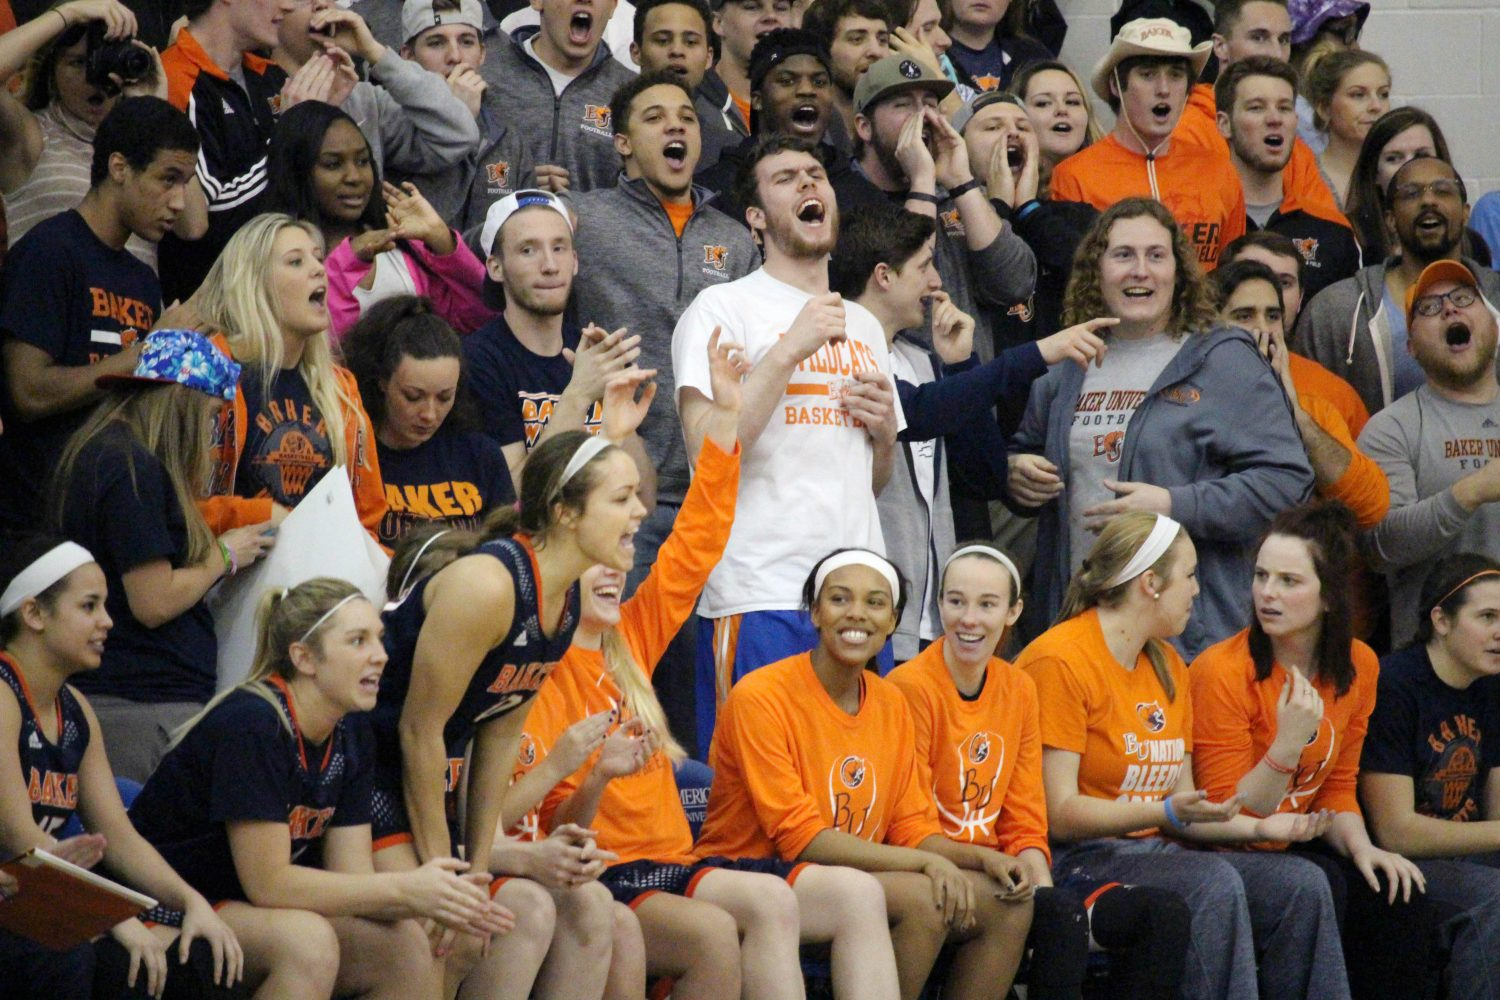 Student section sometimes needs more enthusiasm